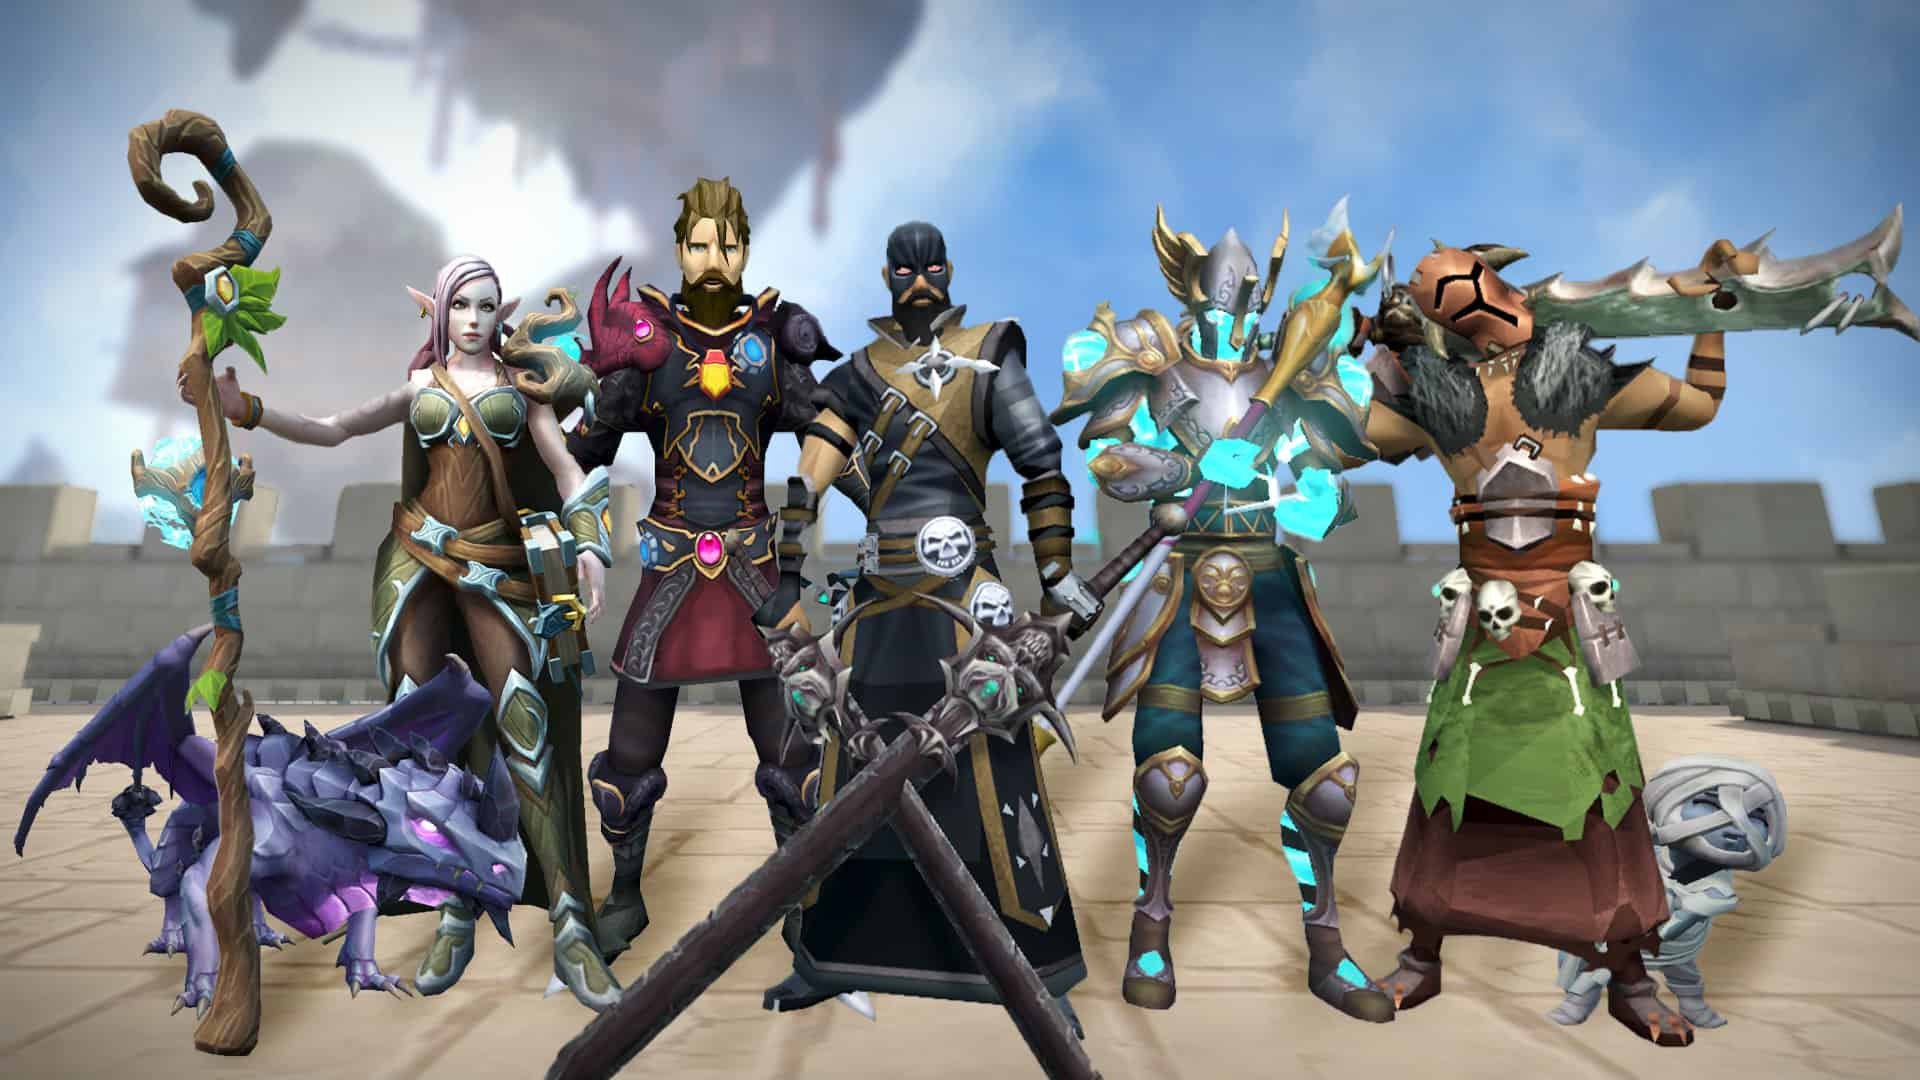 Runescape Delays Updates Again To Finish Restoring Accounts Affected By The Login Lockout 7